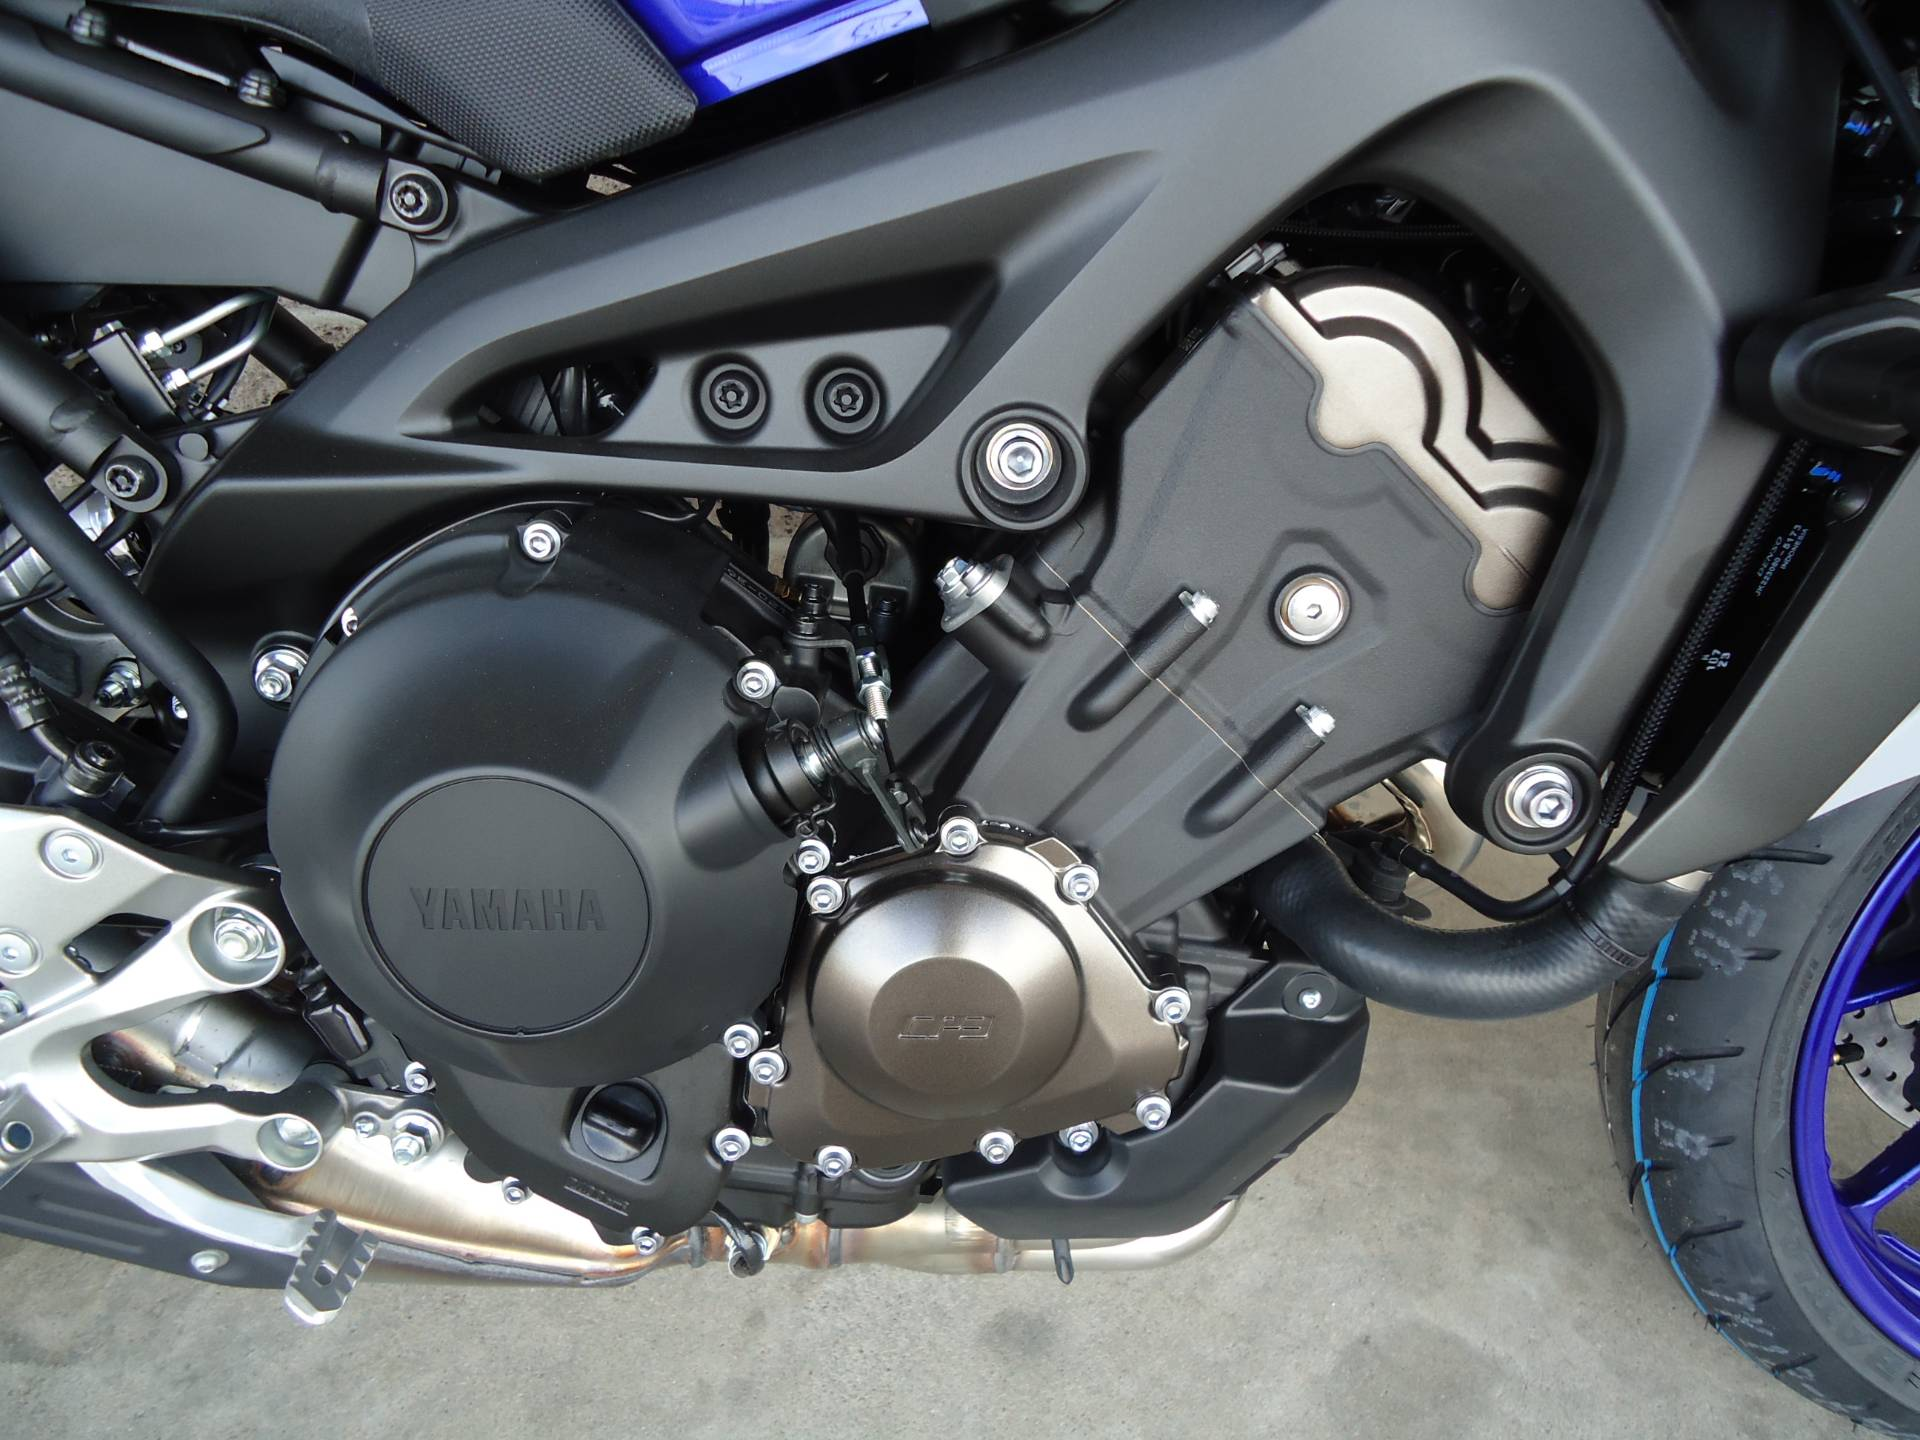 2020 Yamaha MT-09 in Denver, Colorado - Photo 17